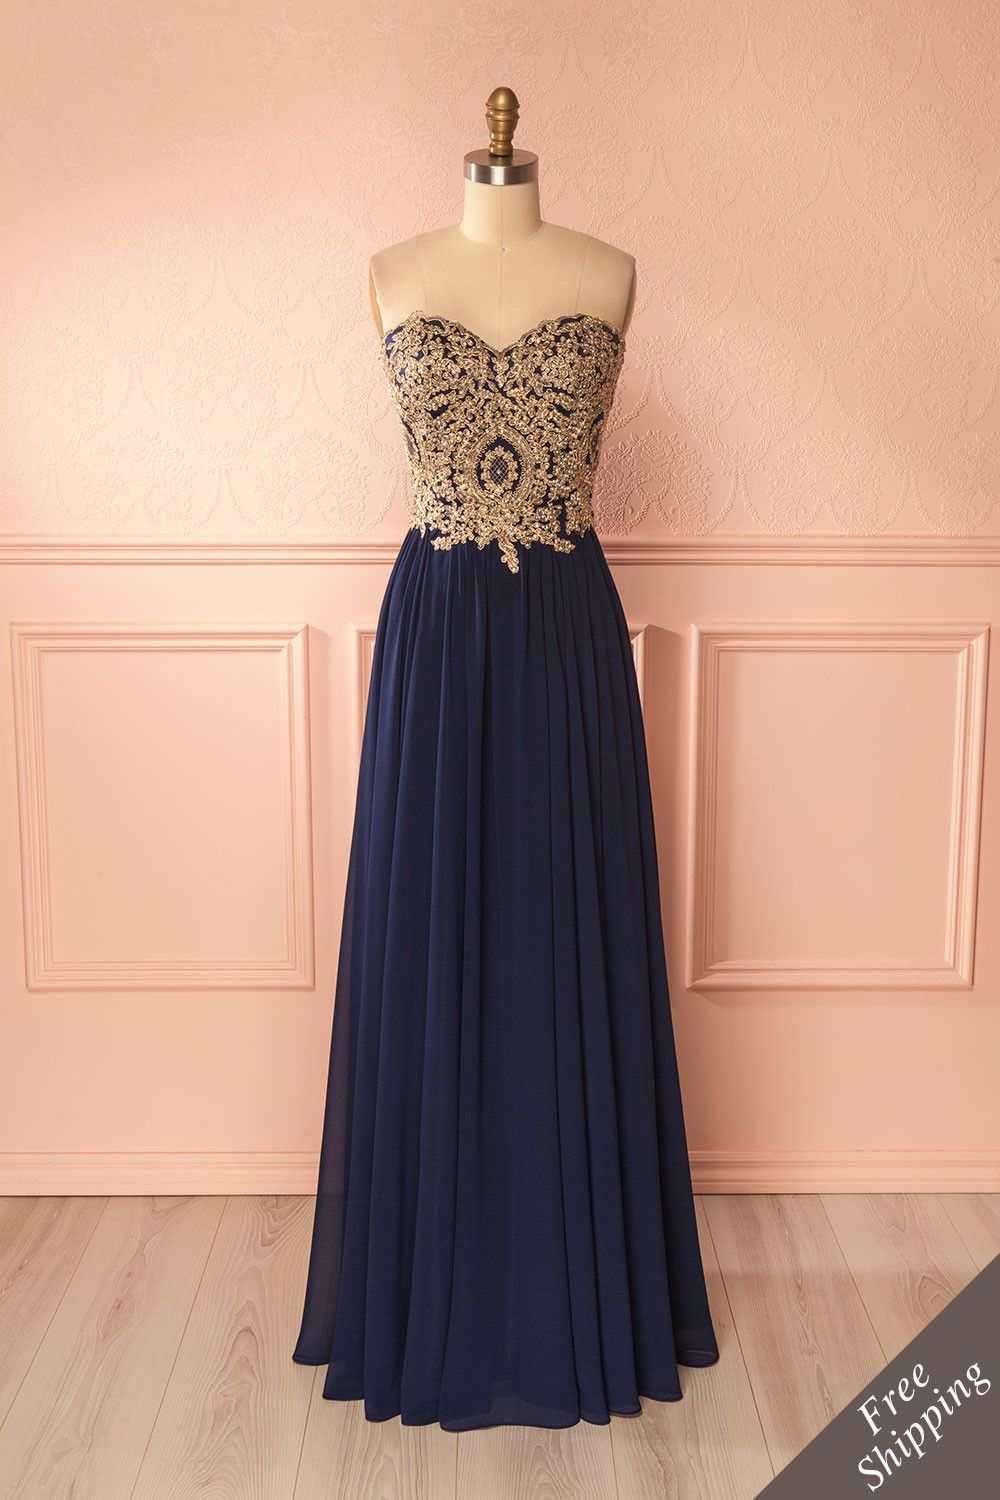 Emorina Nuit | Dresses | Pinterest | Navy ball, Ball gowns and Bodice